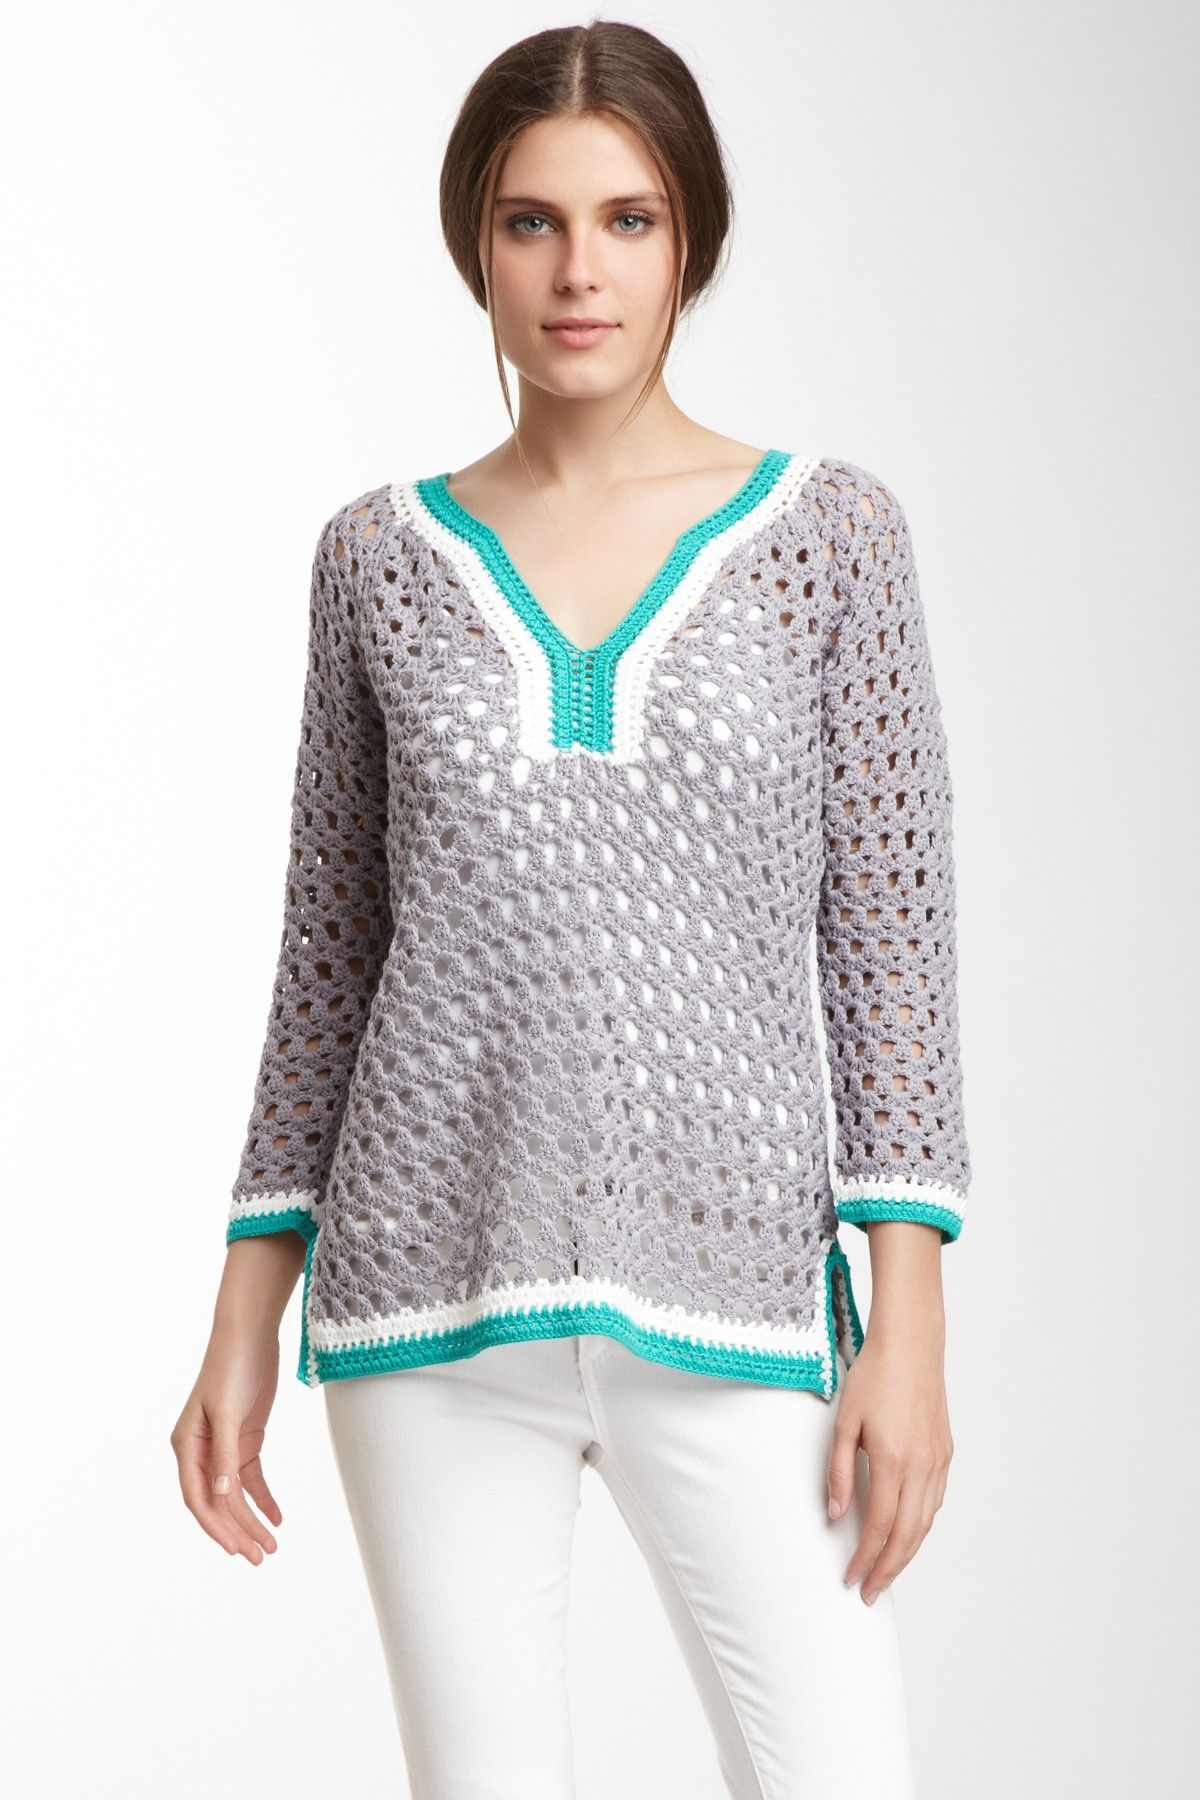 V-Neck Crochet Tunic on HauteLook, туника крючком | Crochet | Pinterest